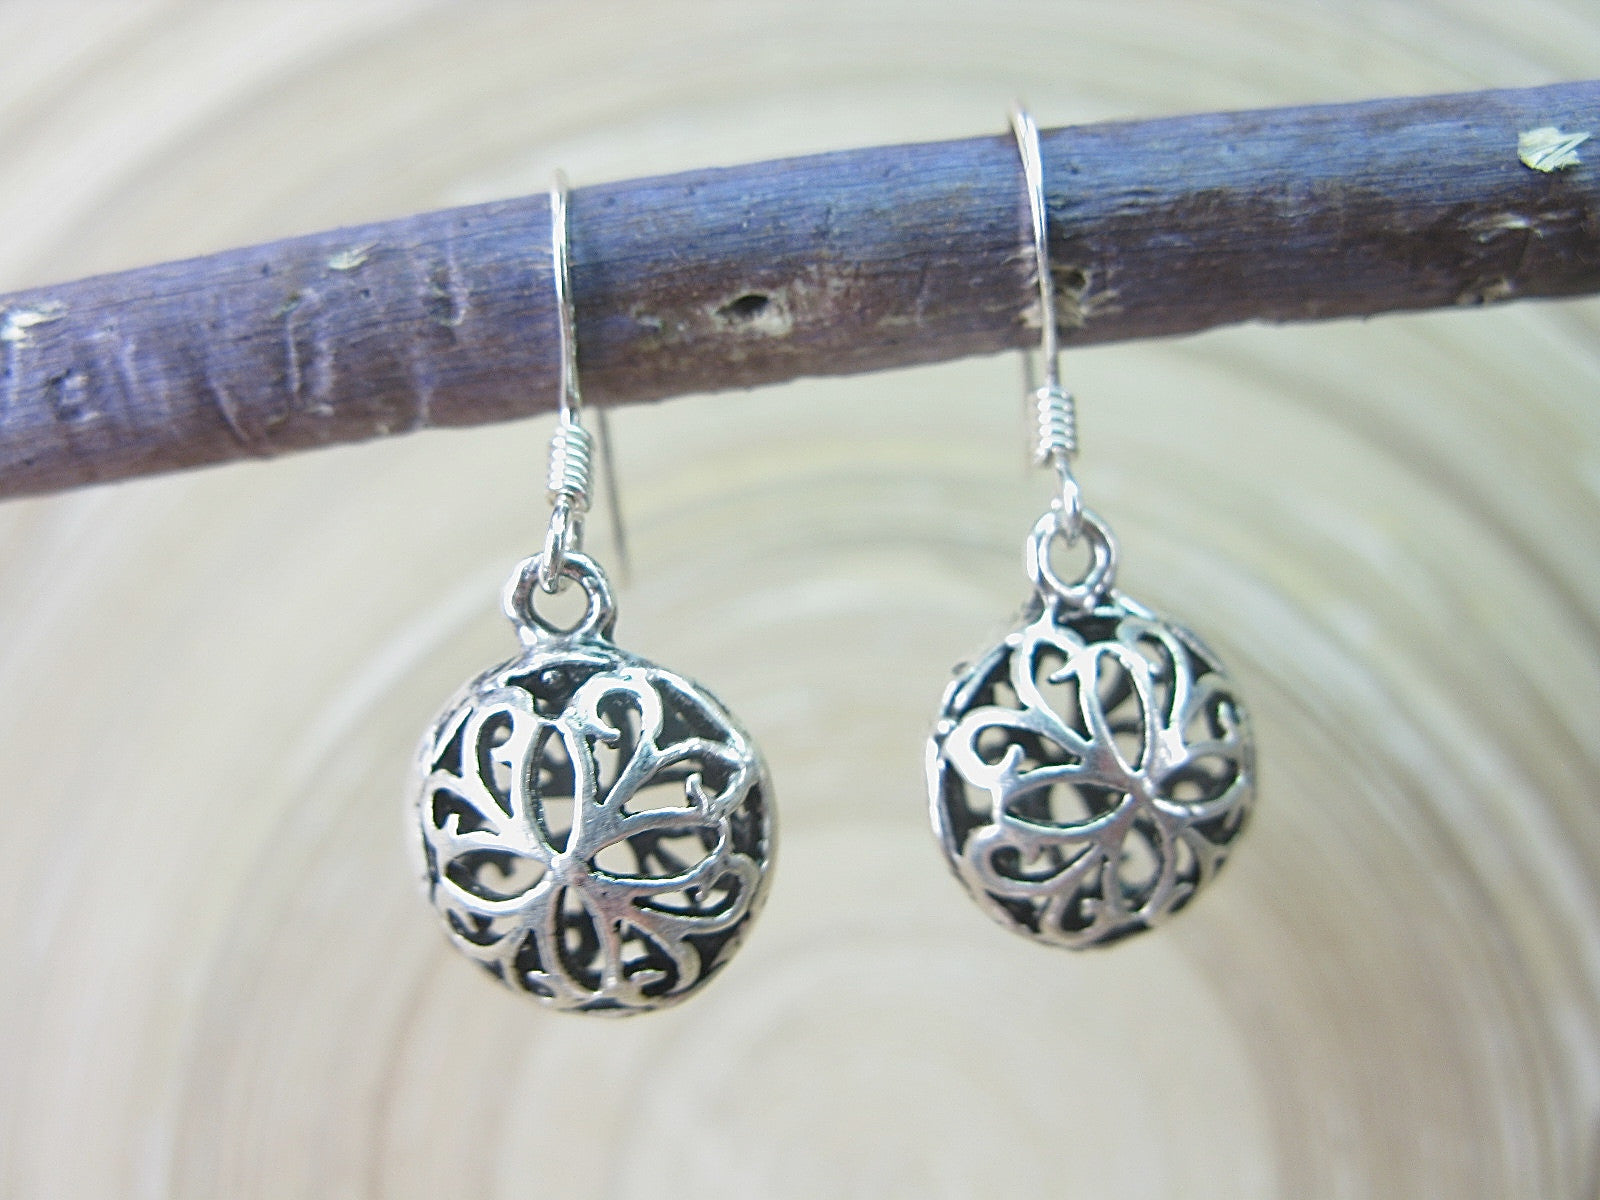 Filigree Lace Round Dangle Drop 925 Sterling Silver Earrings Earrings - Faith Owl